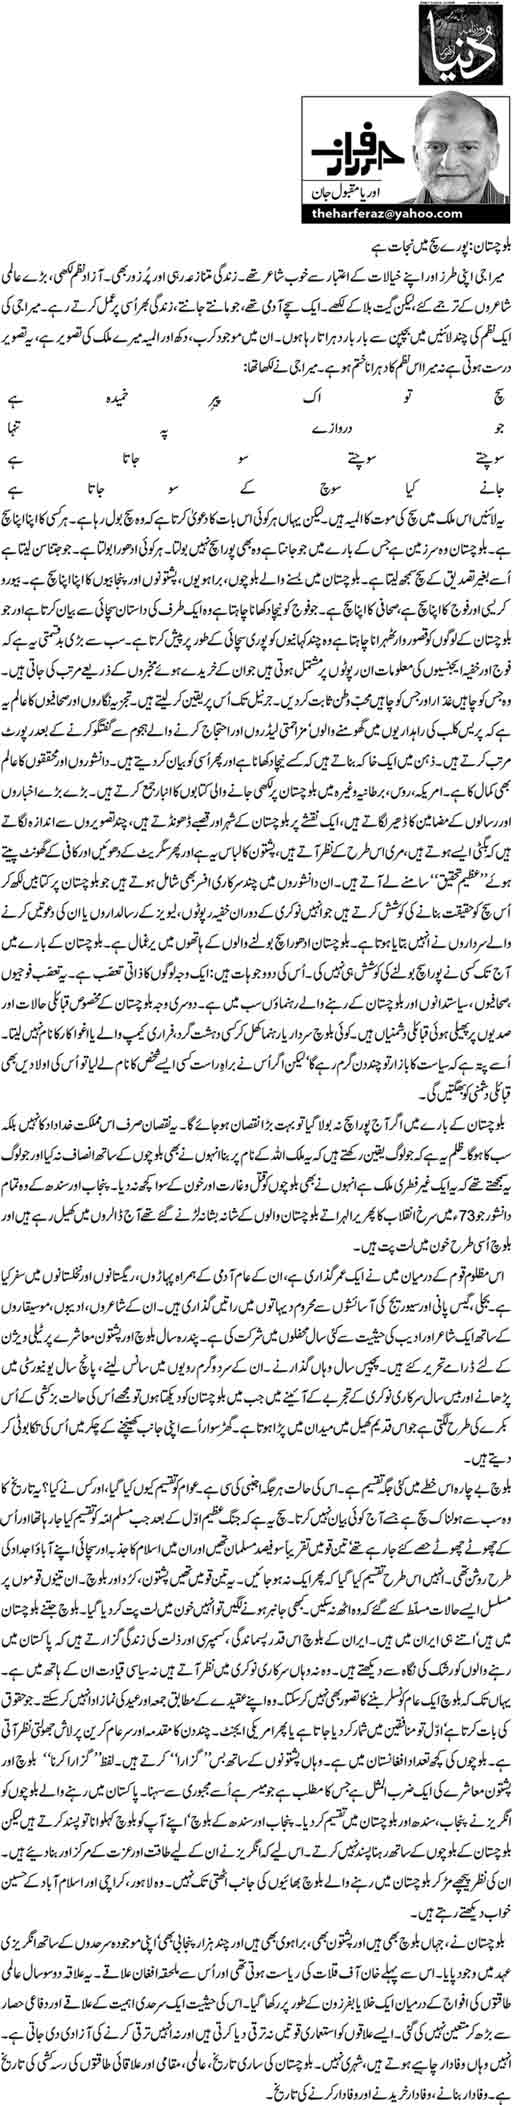 Balochistan:pooray such main nijat hai - Orya Maqbool Jan